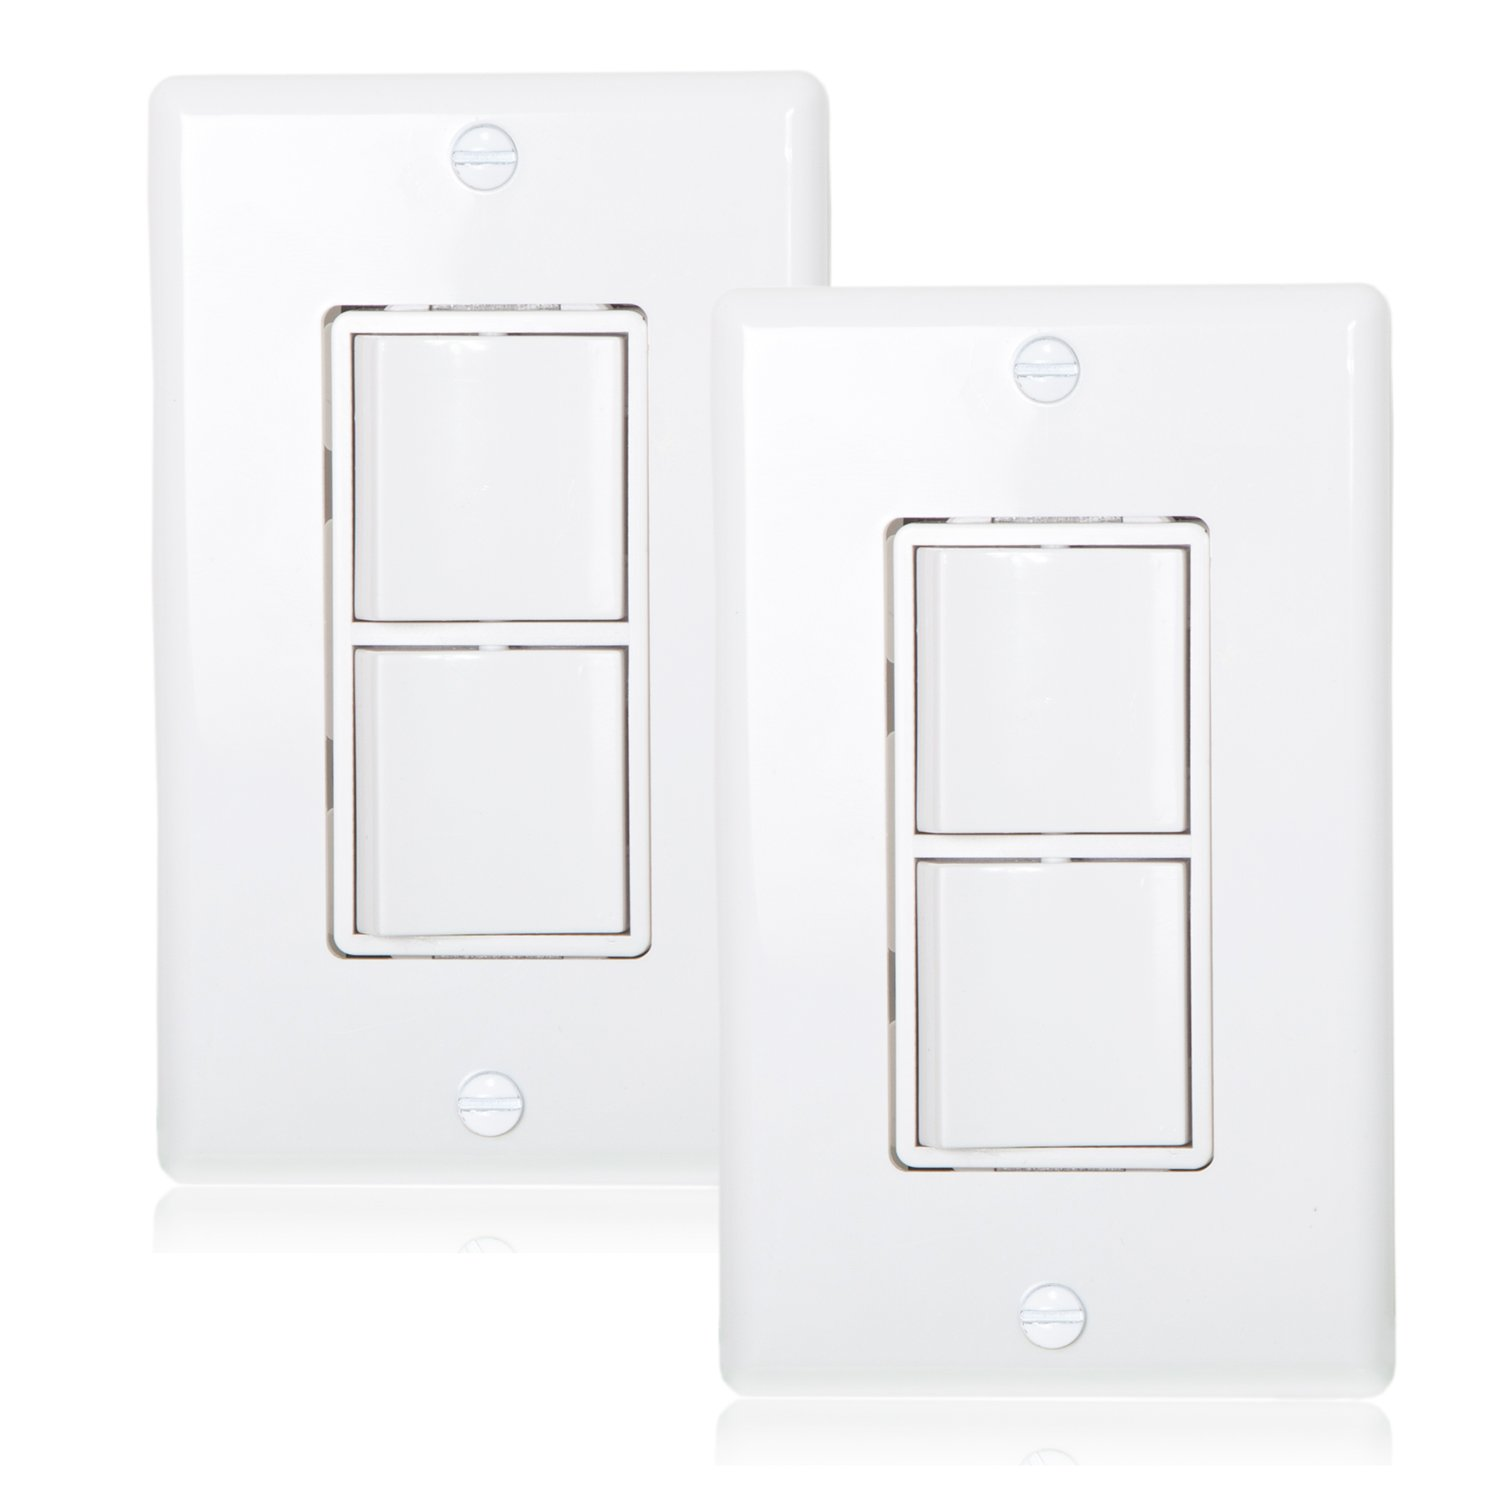 Maxxima AC Combination Switch White Wall Plates Included Duplex Rocker Switch 15 Amp Decorative (Pack of 2) by Maxxima